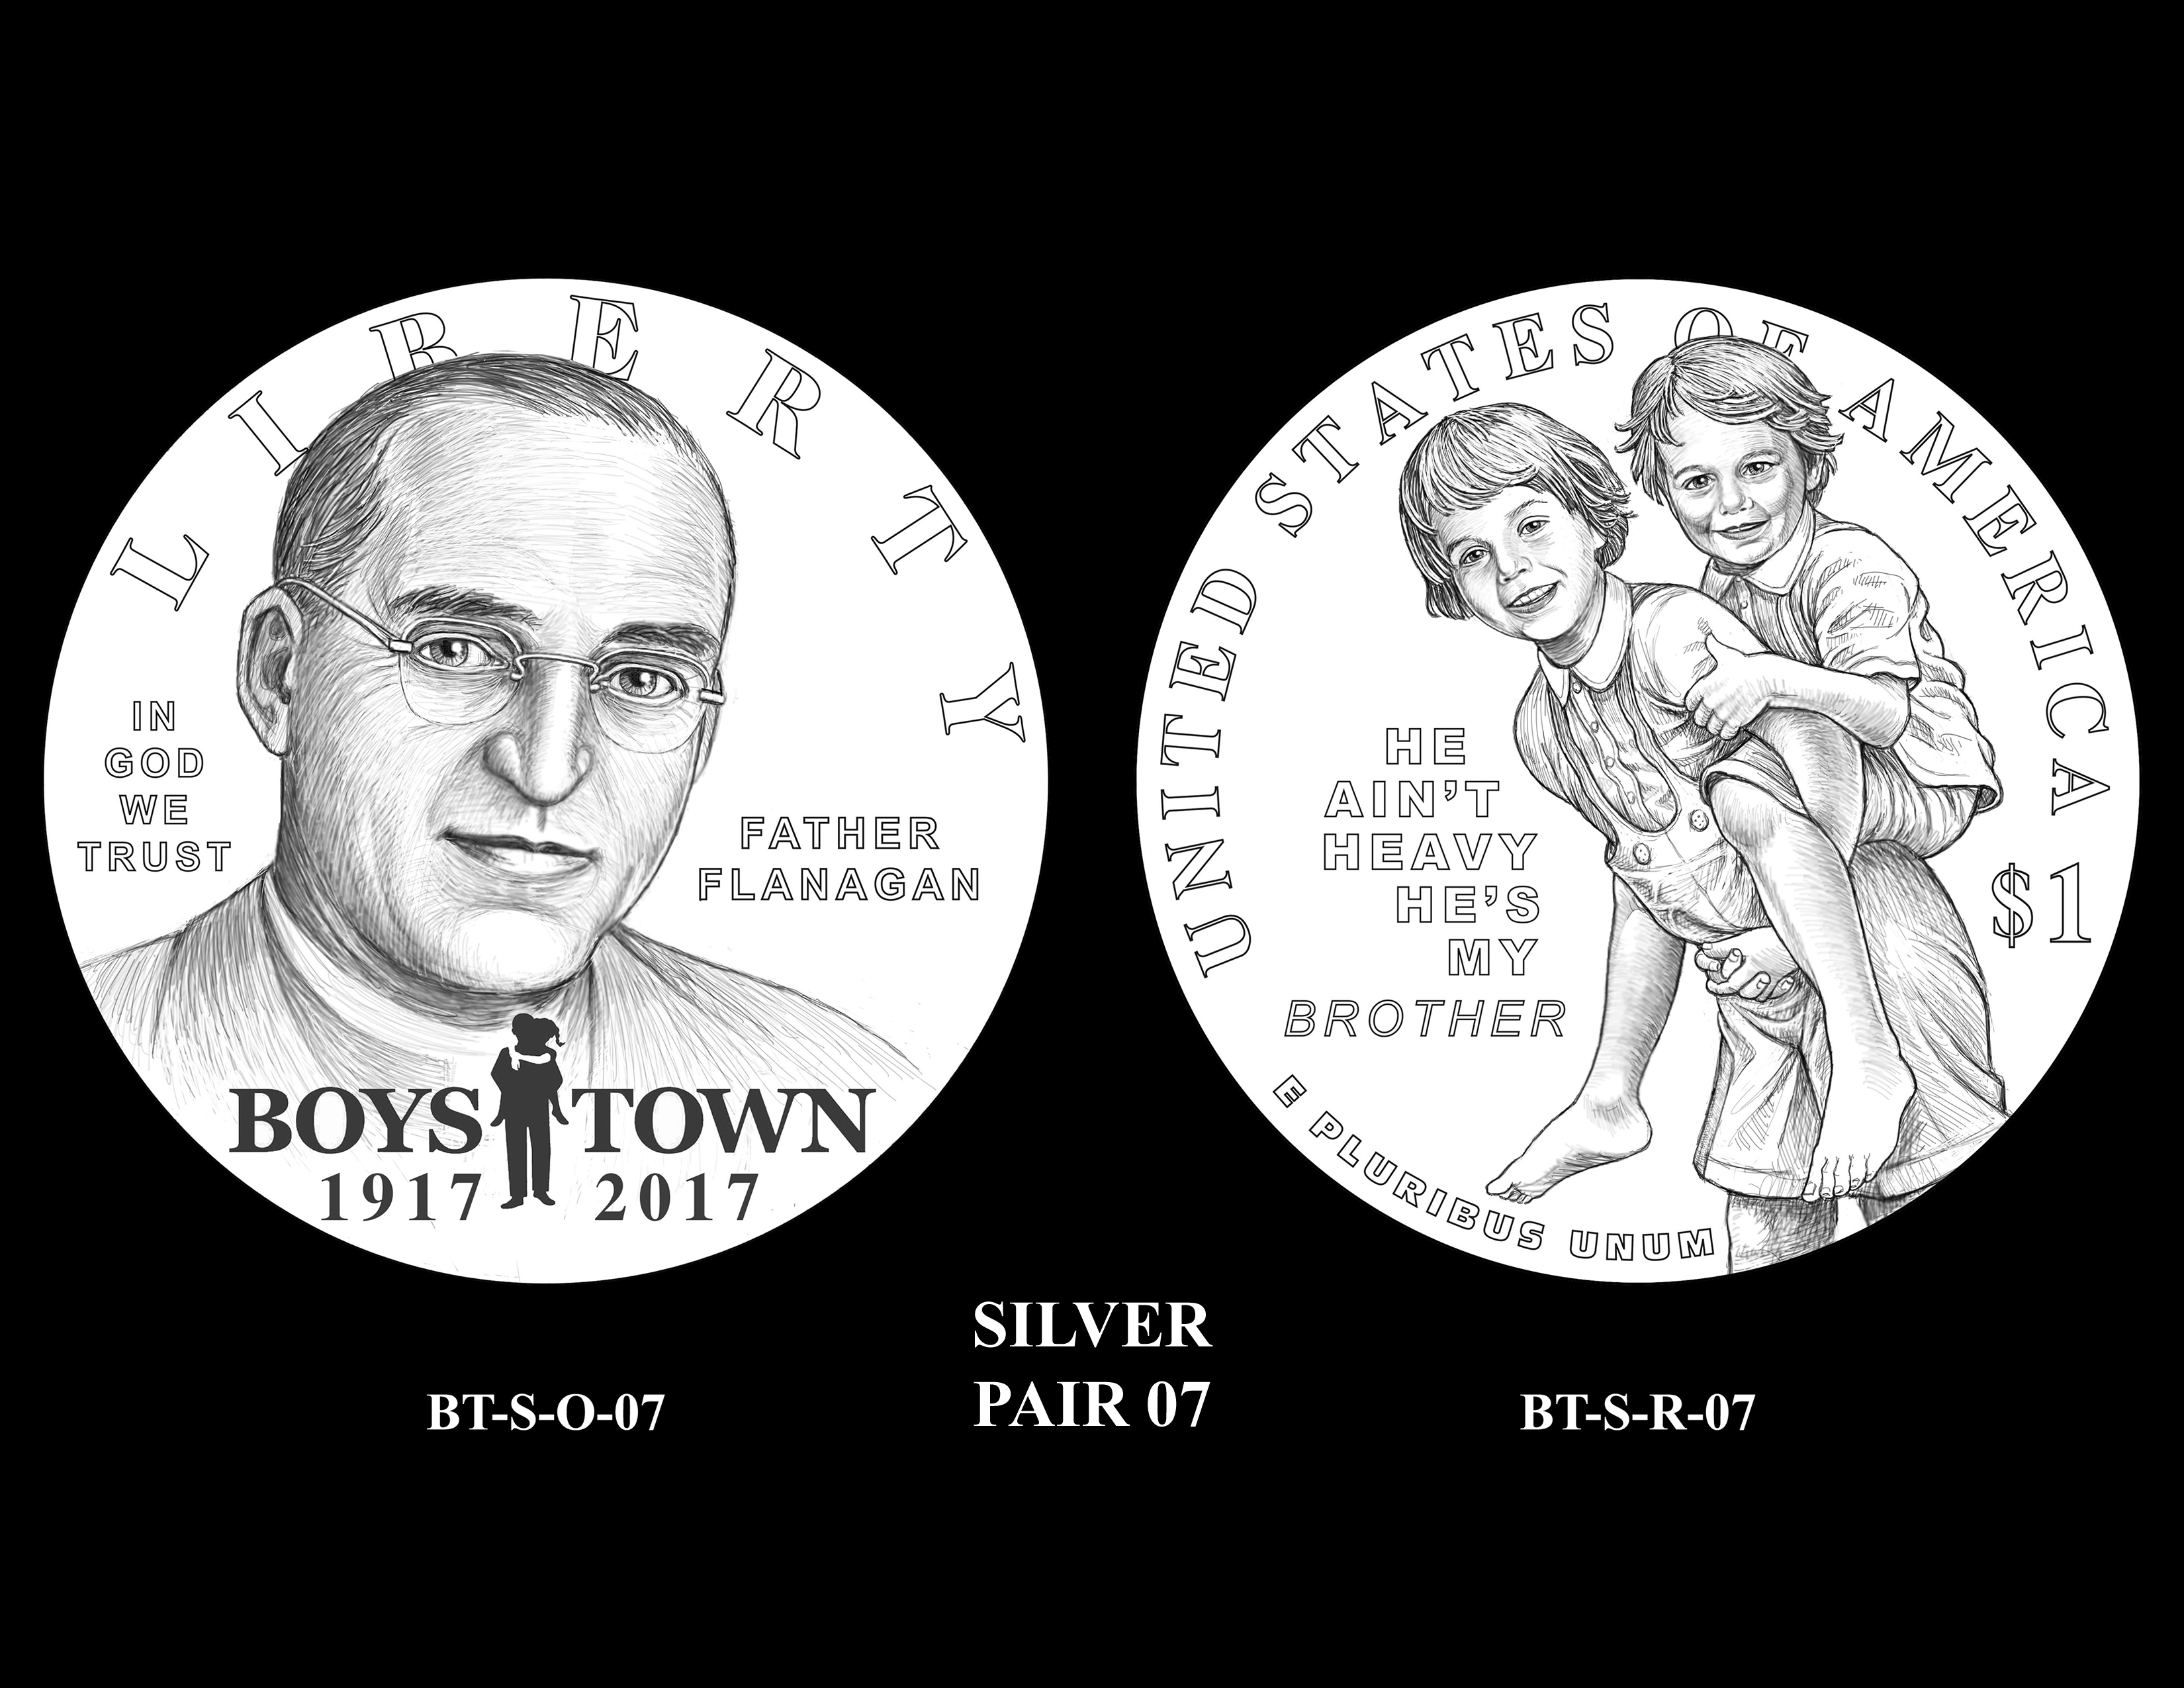 Silver-Pair-07 -- 2017 Boystown Centennial Commemorative Coin  Program